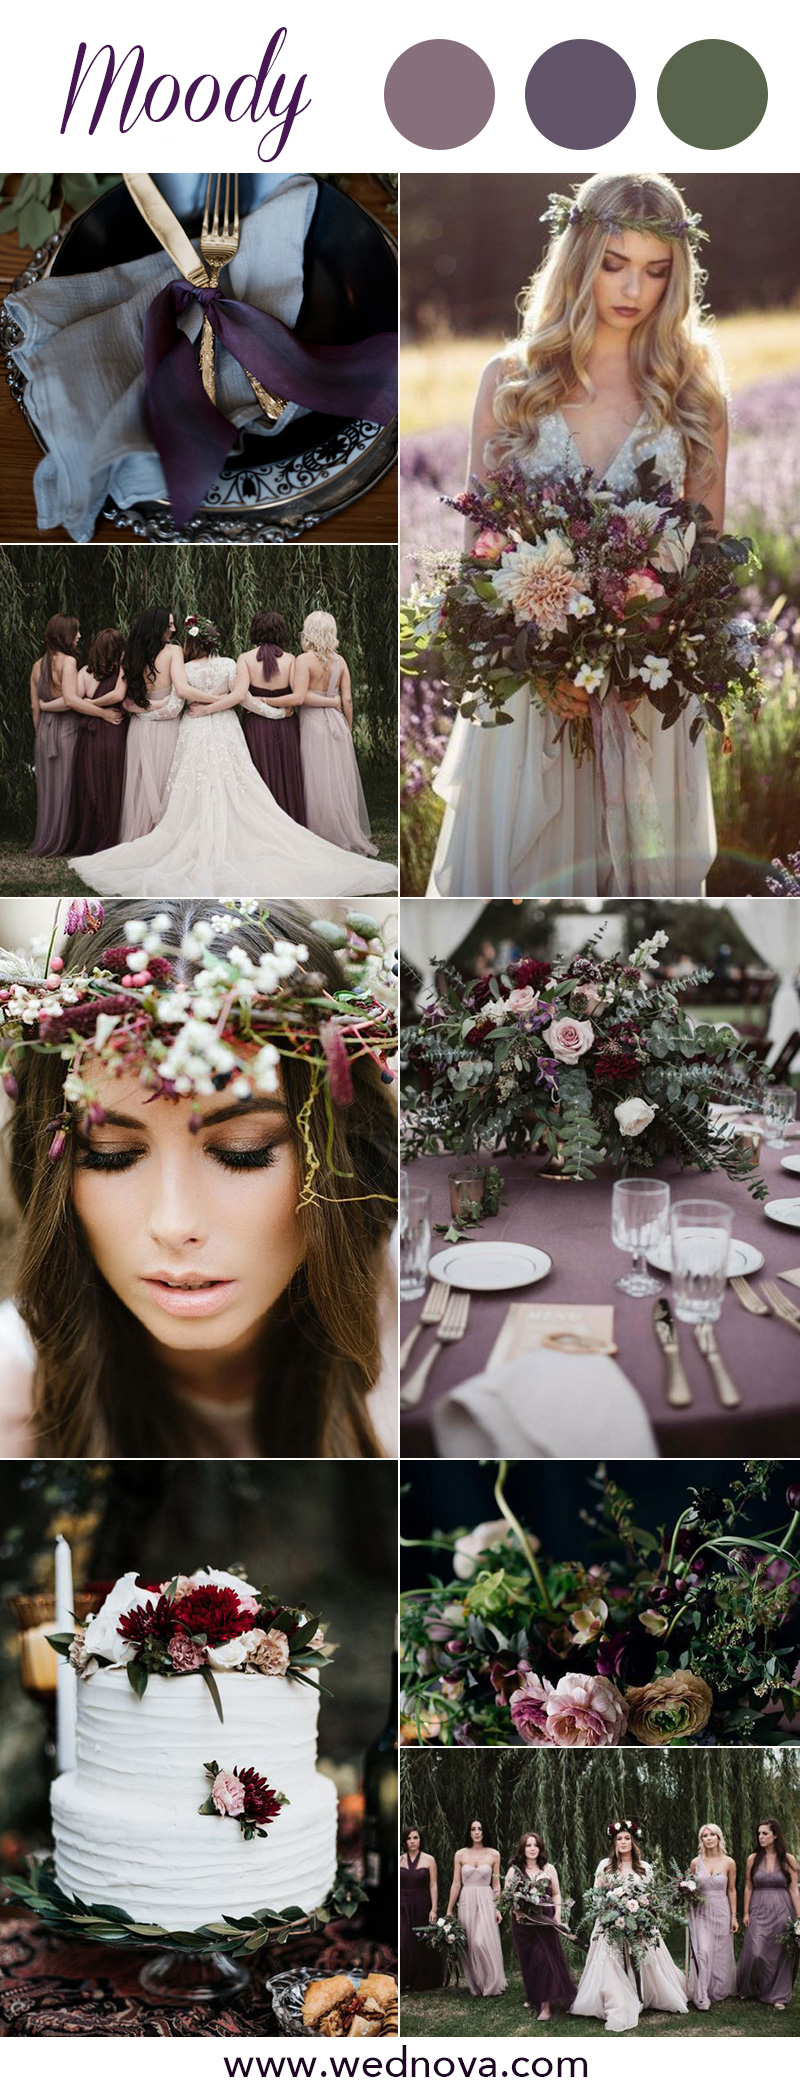 8 Chic Moody Wedding Color Palettes That Celebrate the ...